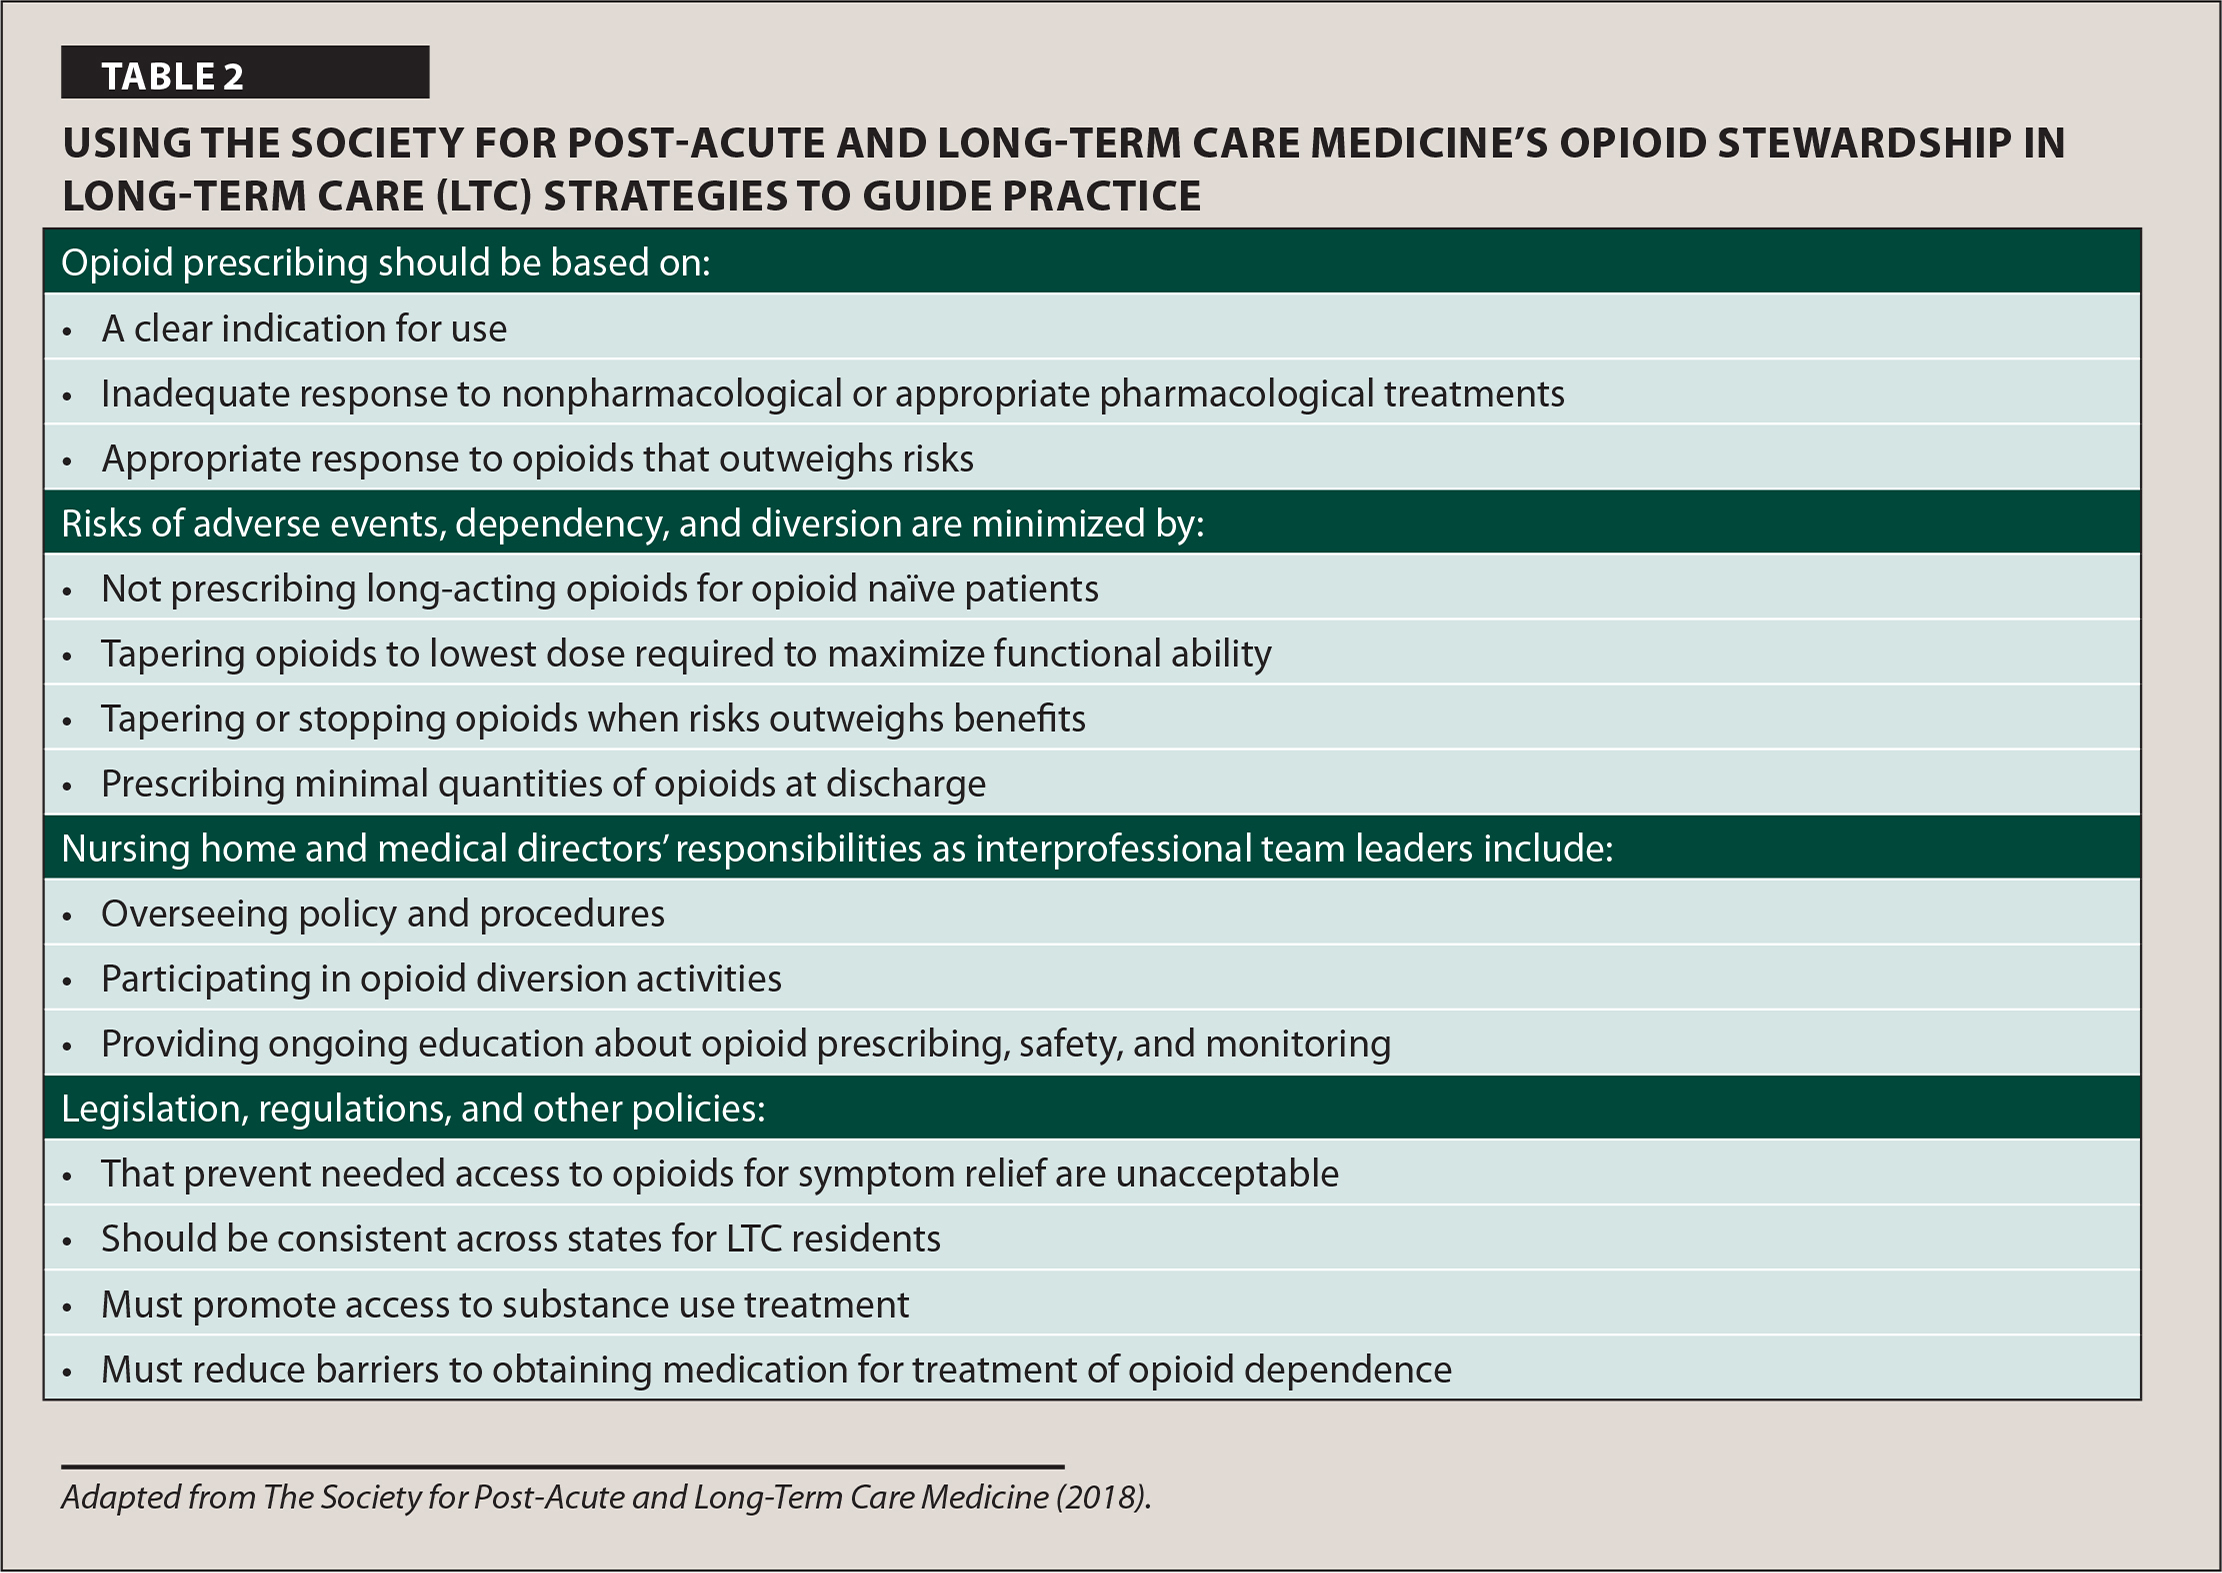 Using the Society for Post-Acute and Long-Term Care Medicine's Opioid Stewardship in Long-Term Care (LTC) Strategies to Guide Practice